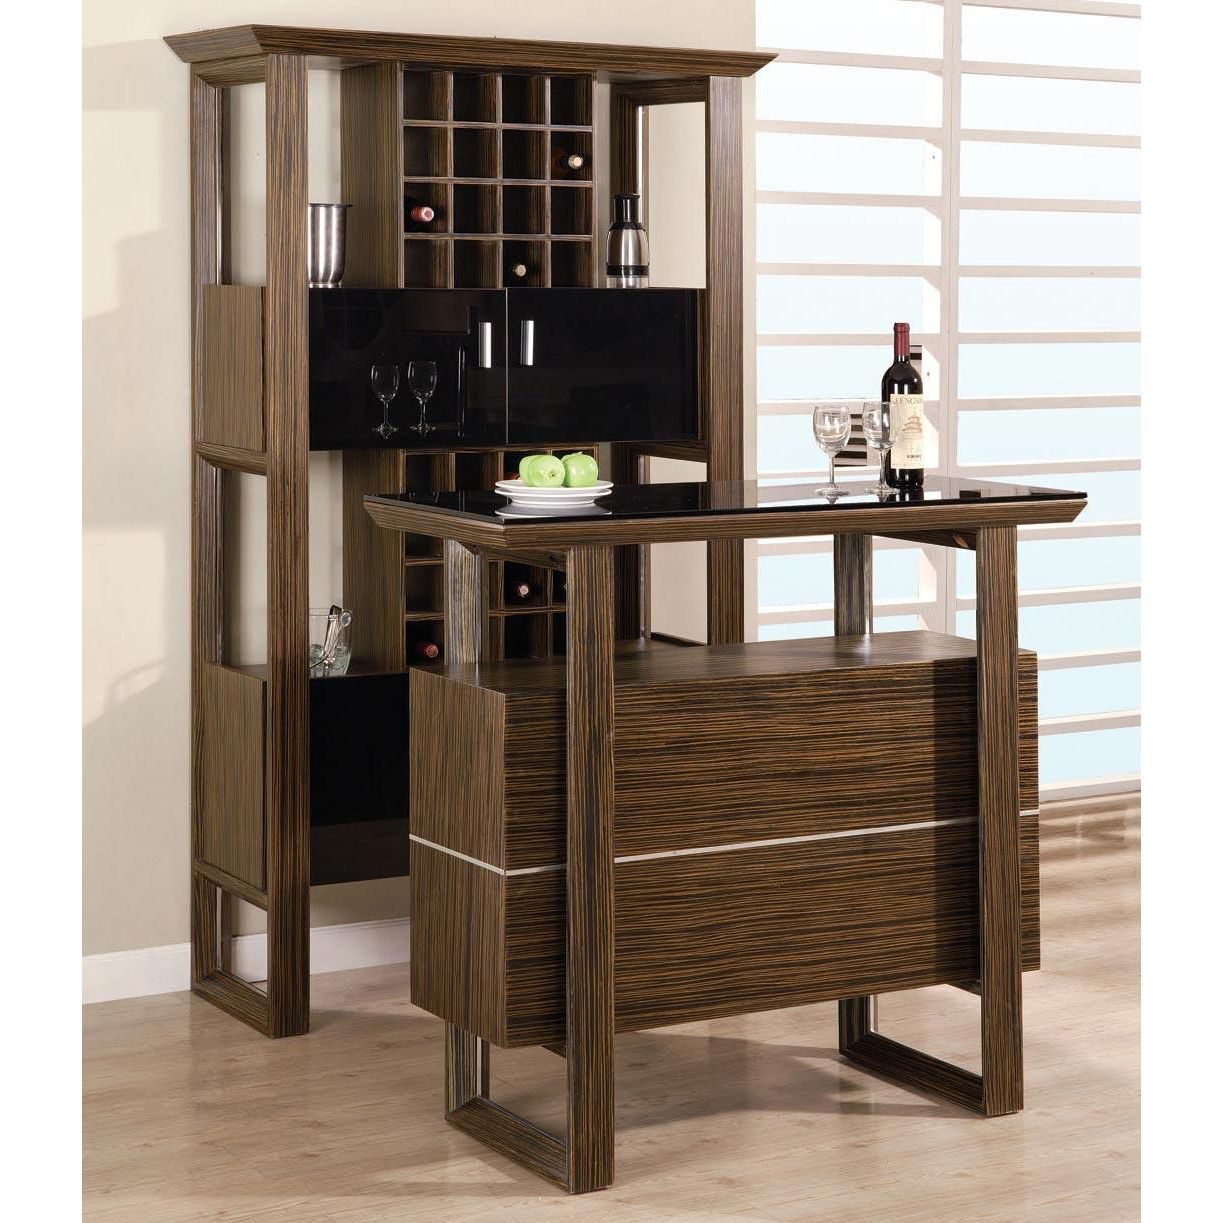 Dining Room Bar Furniture Modern Used Furniture Check More At Http